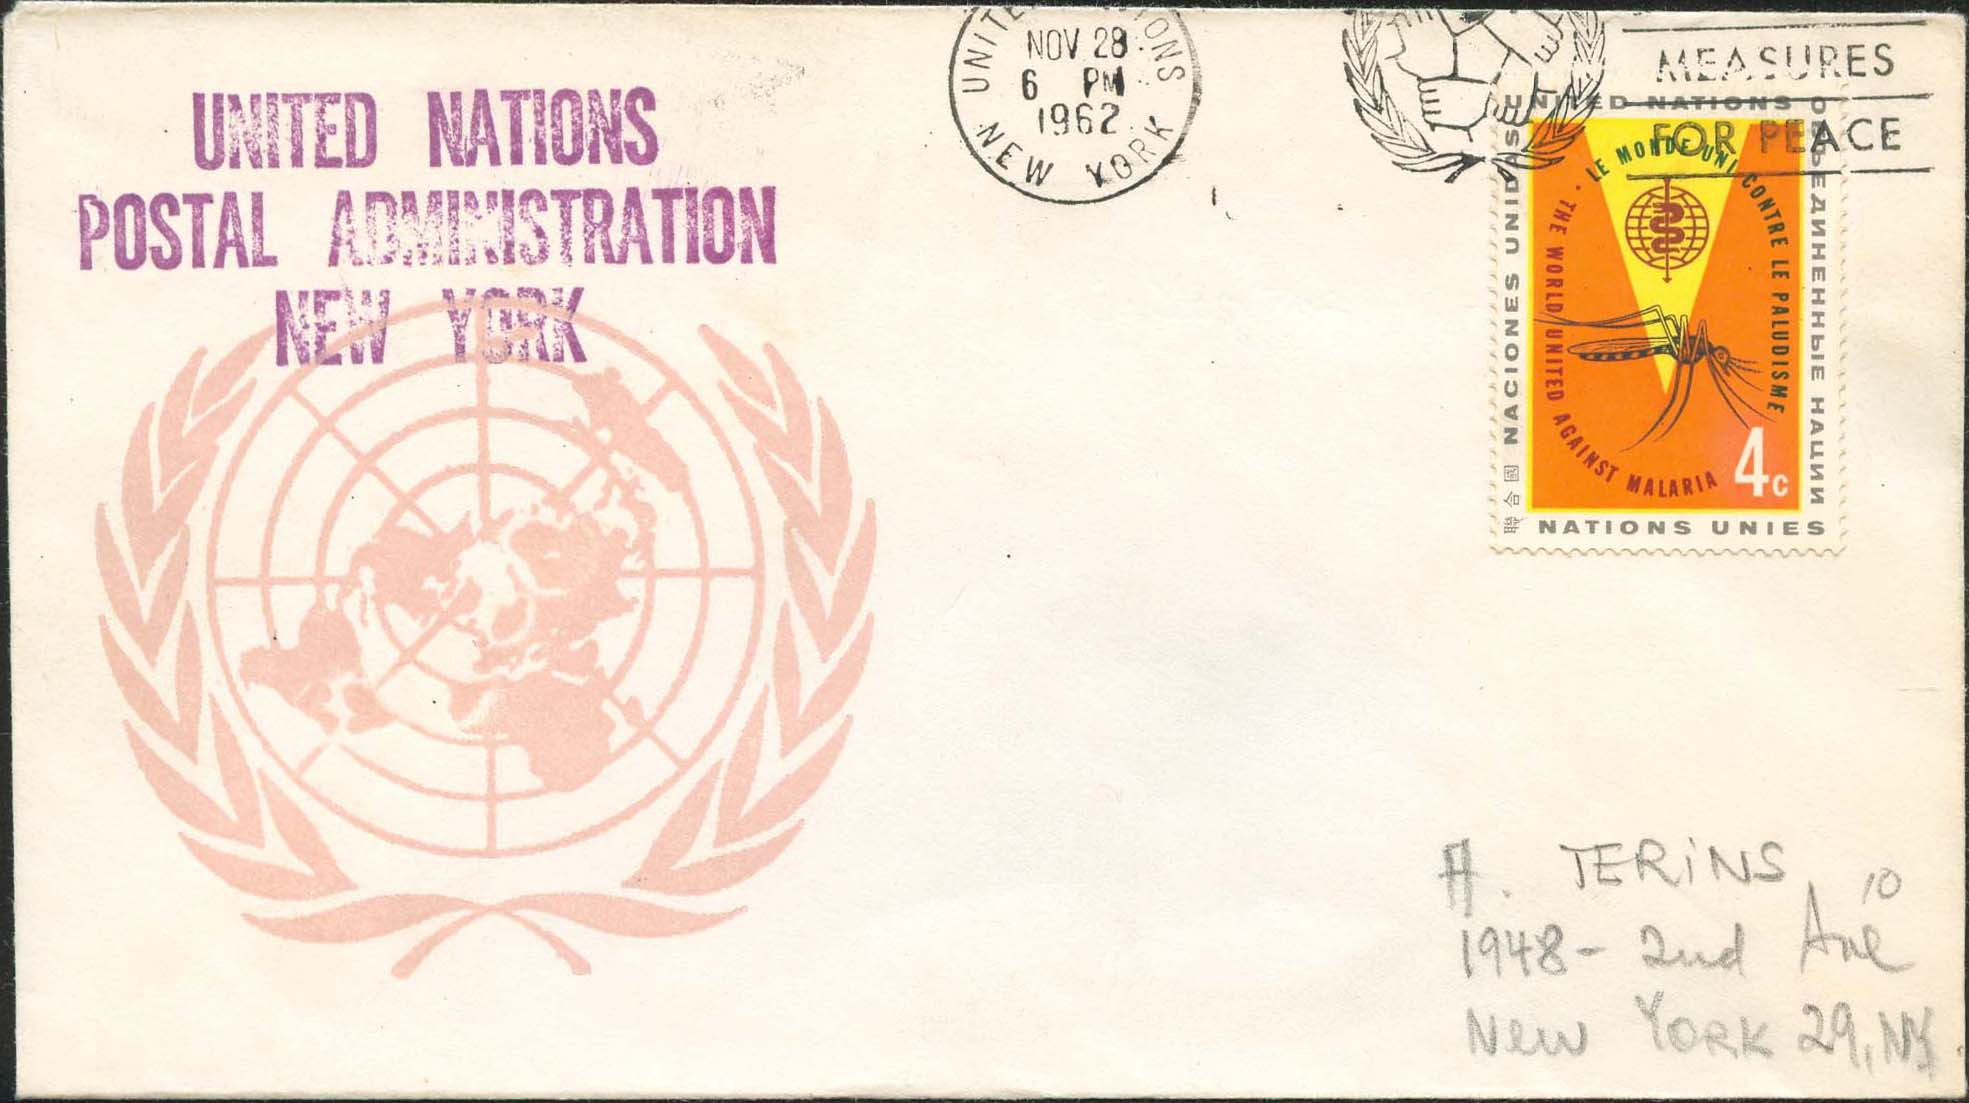 "Scott 102 2nd print - Nov 28, 1962 <br />Machine slogan cancel ""Collective Measures for Peace""<br />UN Postal Administration rubber stamped return address"